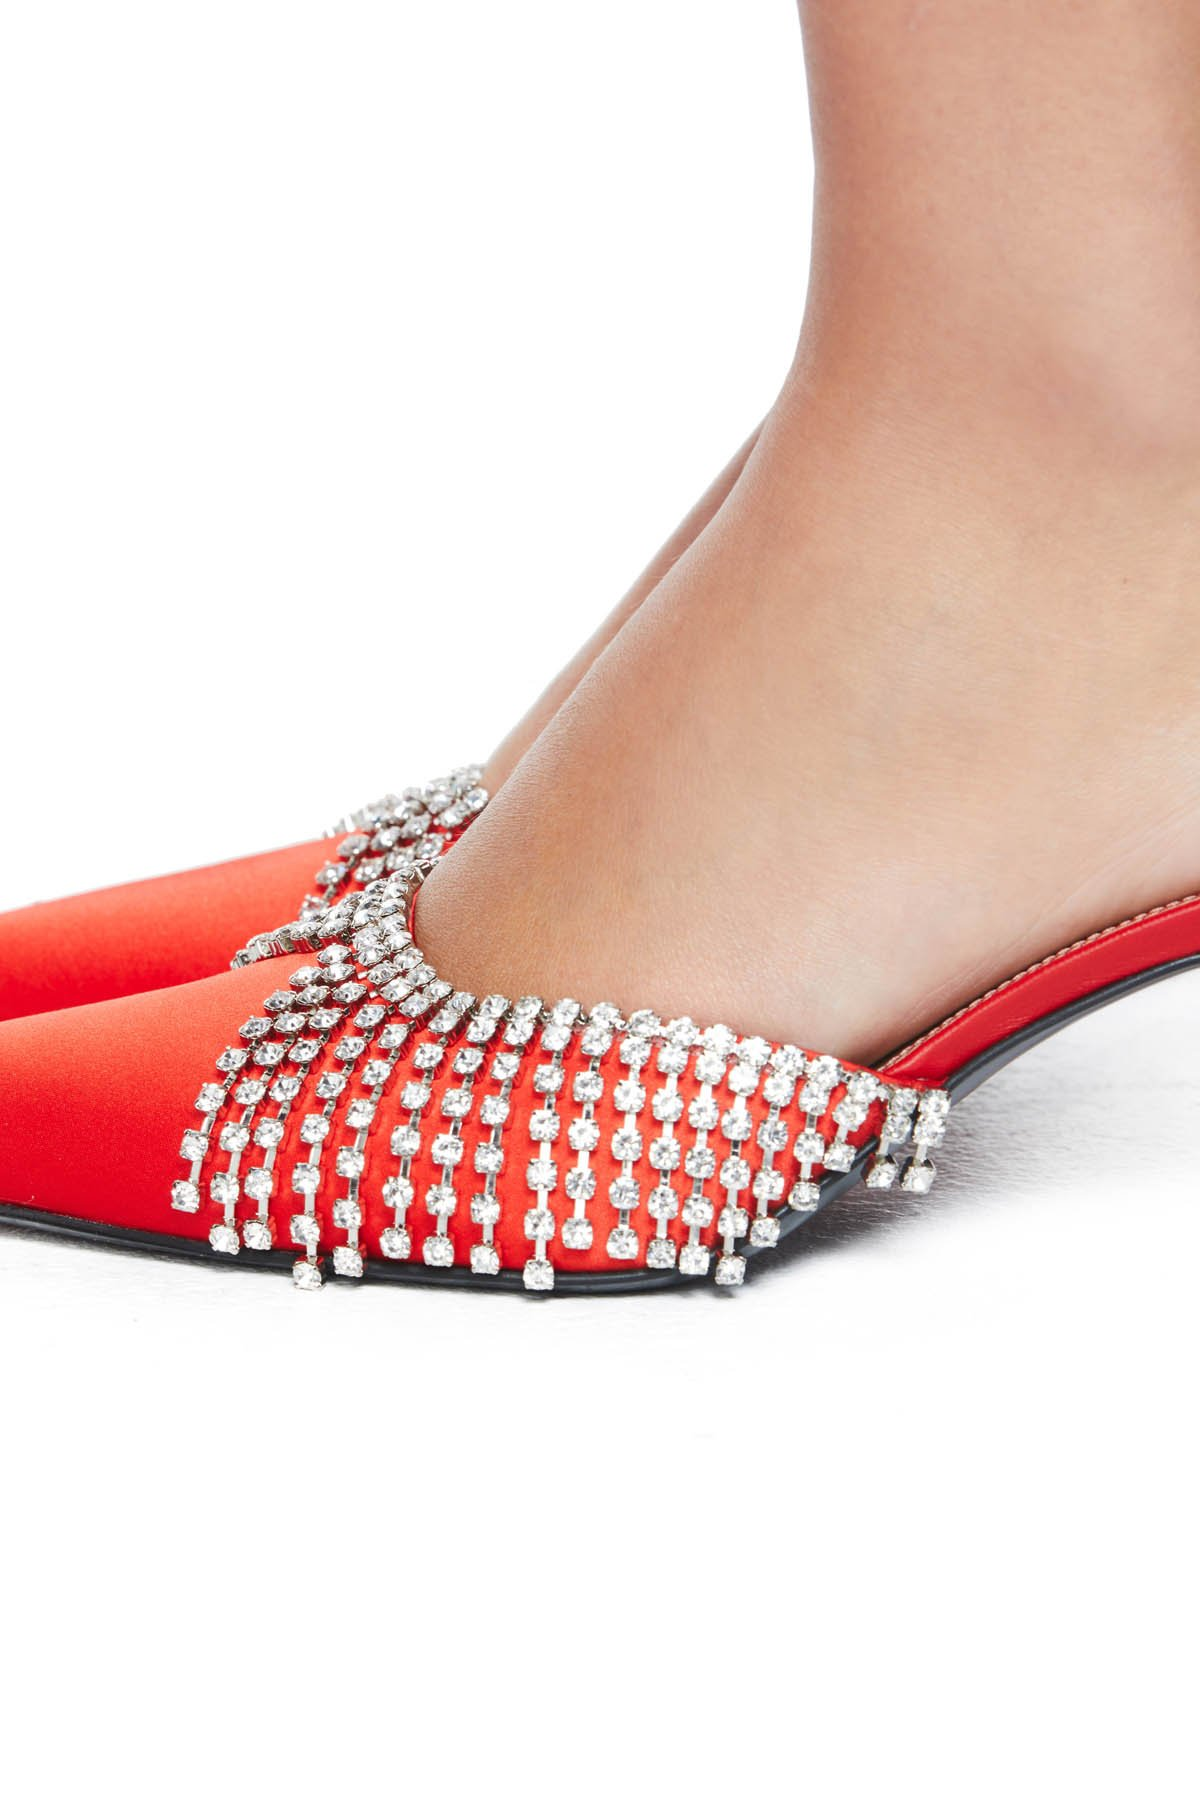 Pointed toe kitten heel with crystal chandelier detailing. 65MM heel. Available in Red.